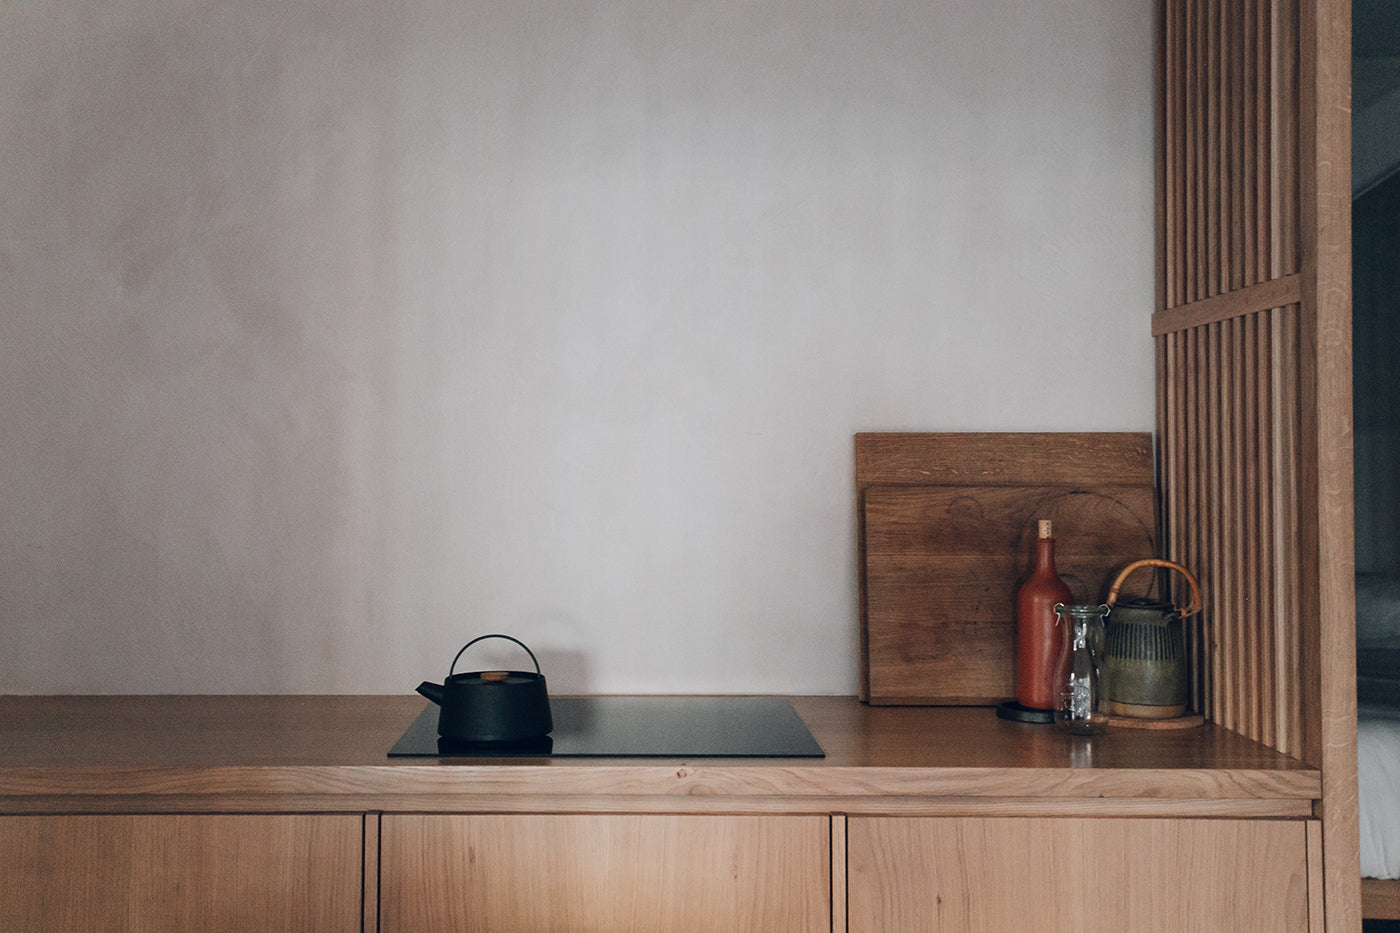 Detail shot of the kitchen and walls in a studio designed by Izat and Arundell in Edinburgh. (Photo: Haarkon)